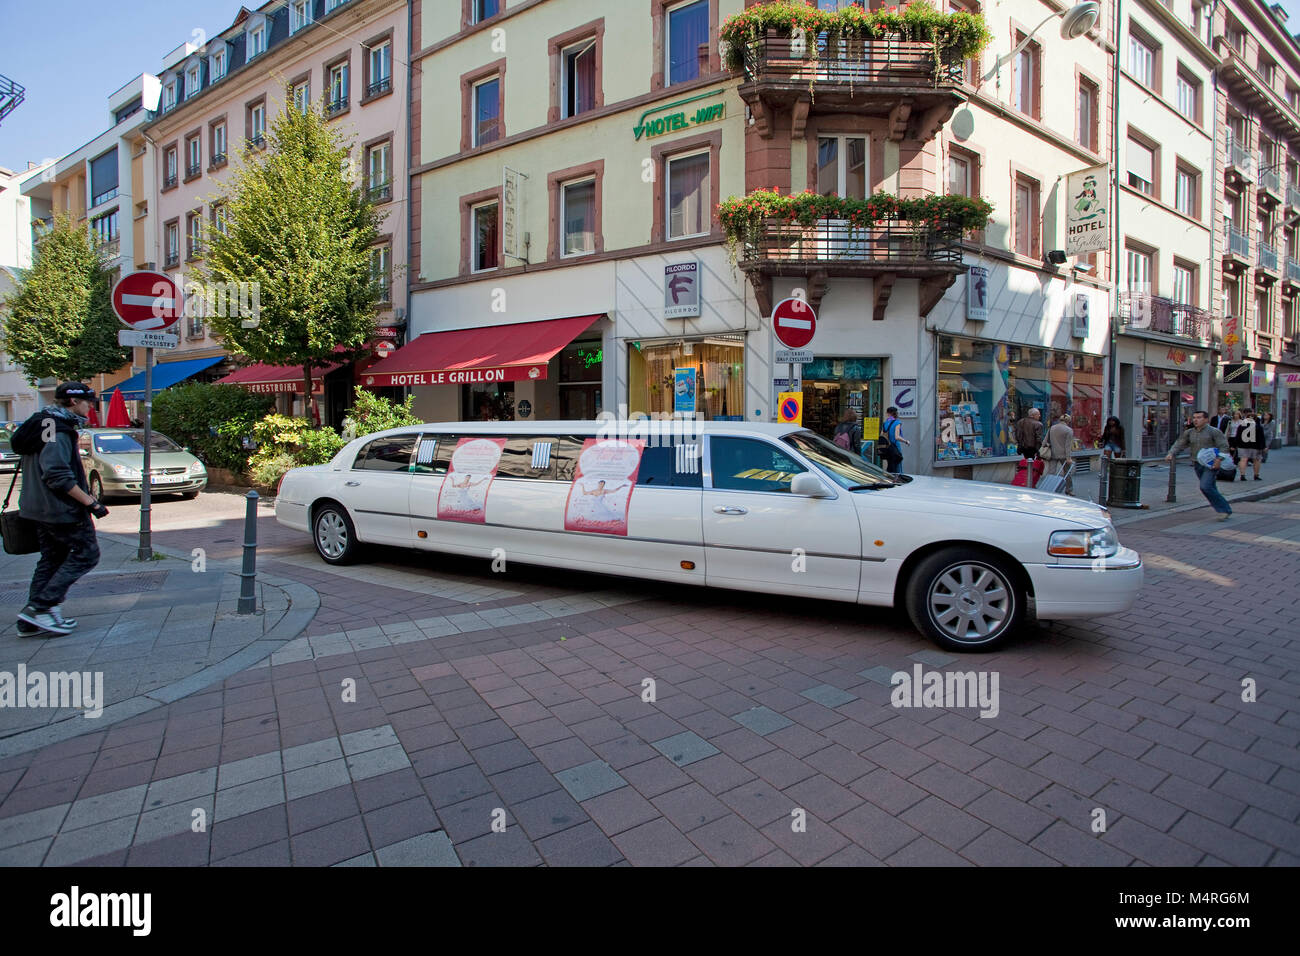 Stretched limousine turns to Rue du Maire Kuss, Strasbourg, Alsace, France, Bas-Rhin, Europe - Stock Image